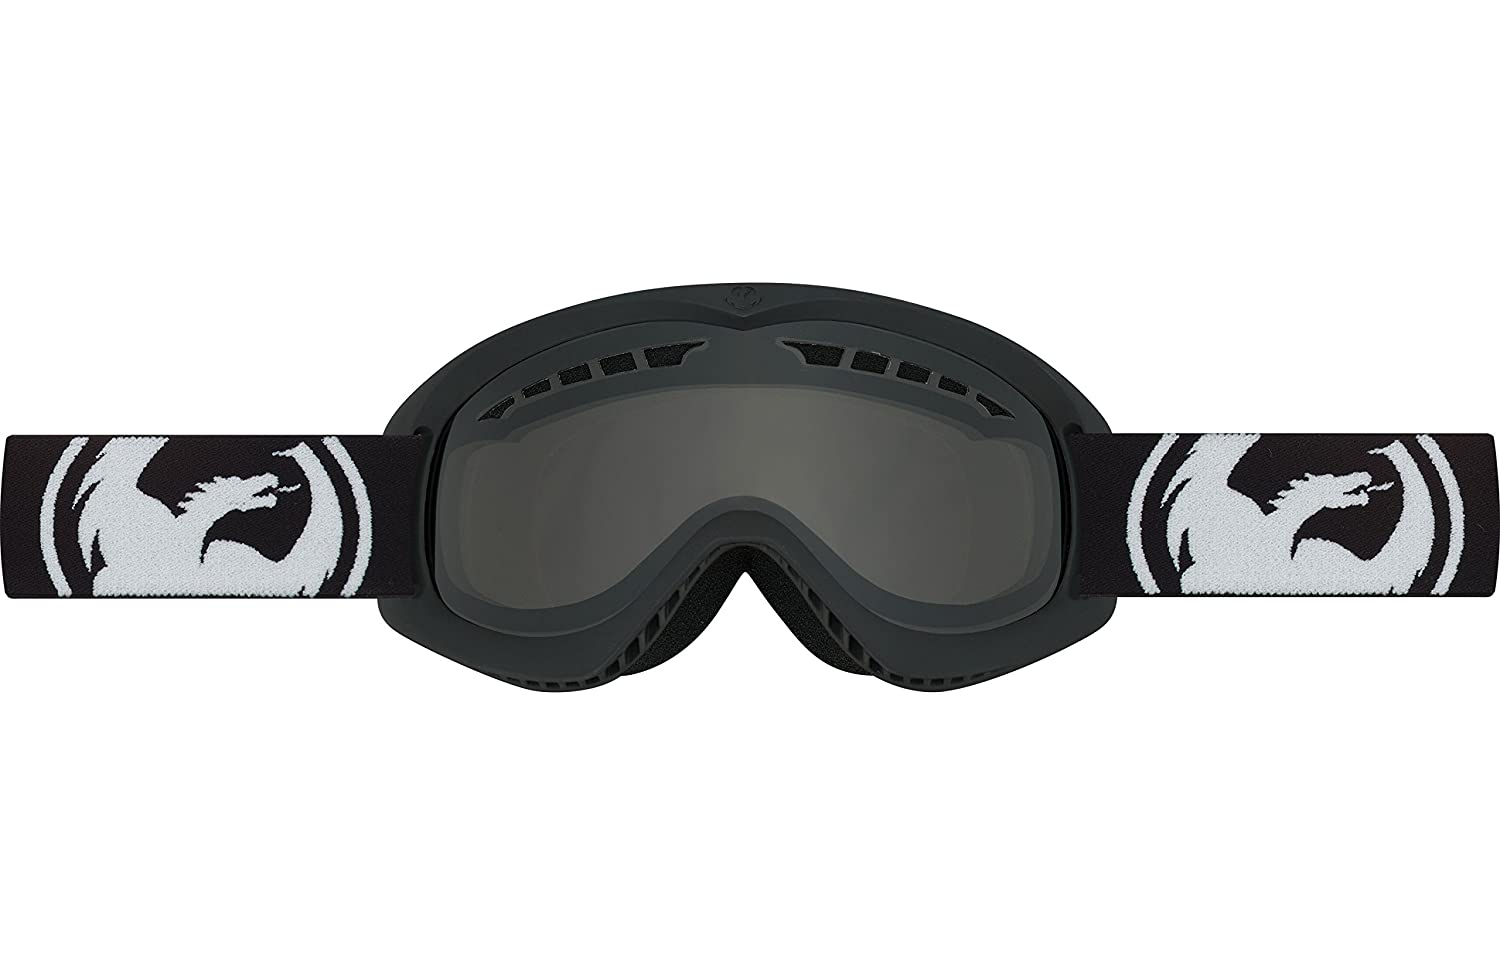 fbcac870c395 Amazon.com   Dragon Alliance DXS Ski Goggles